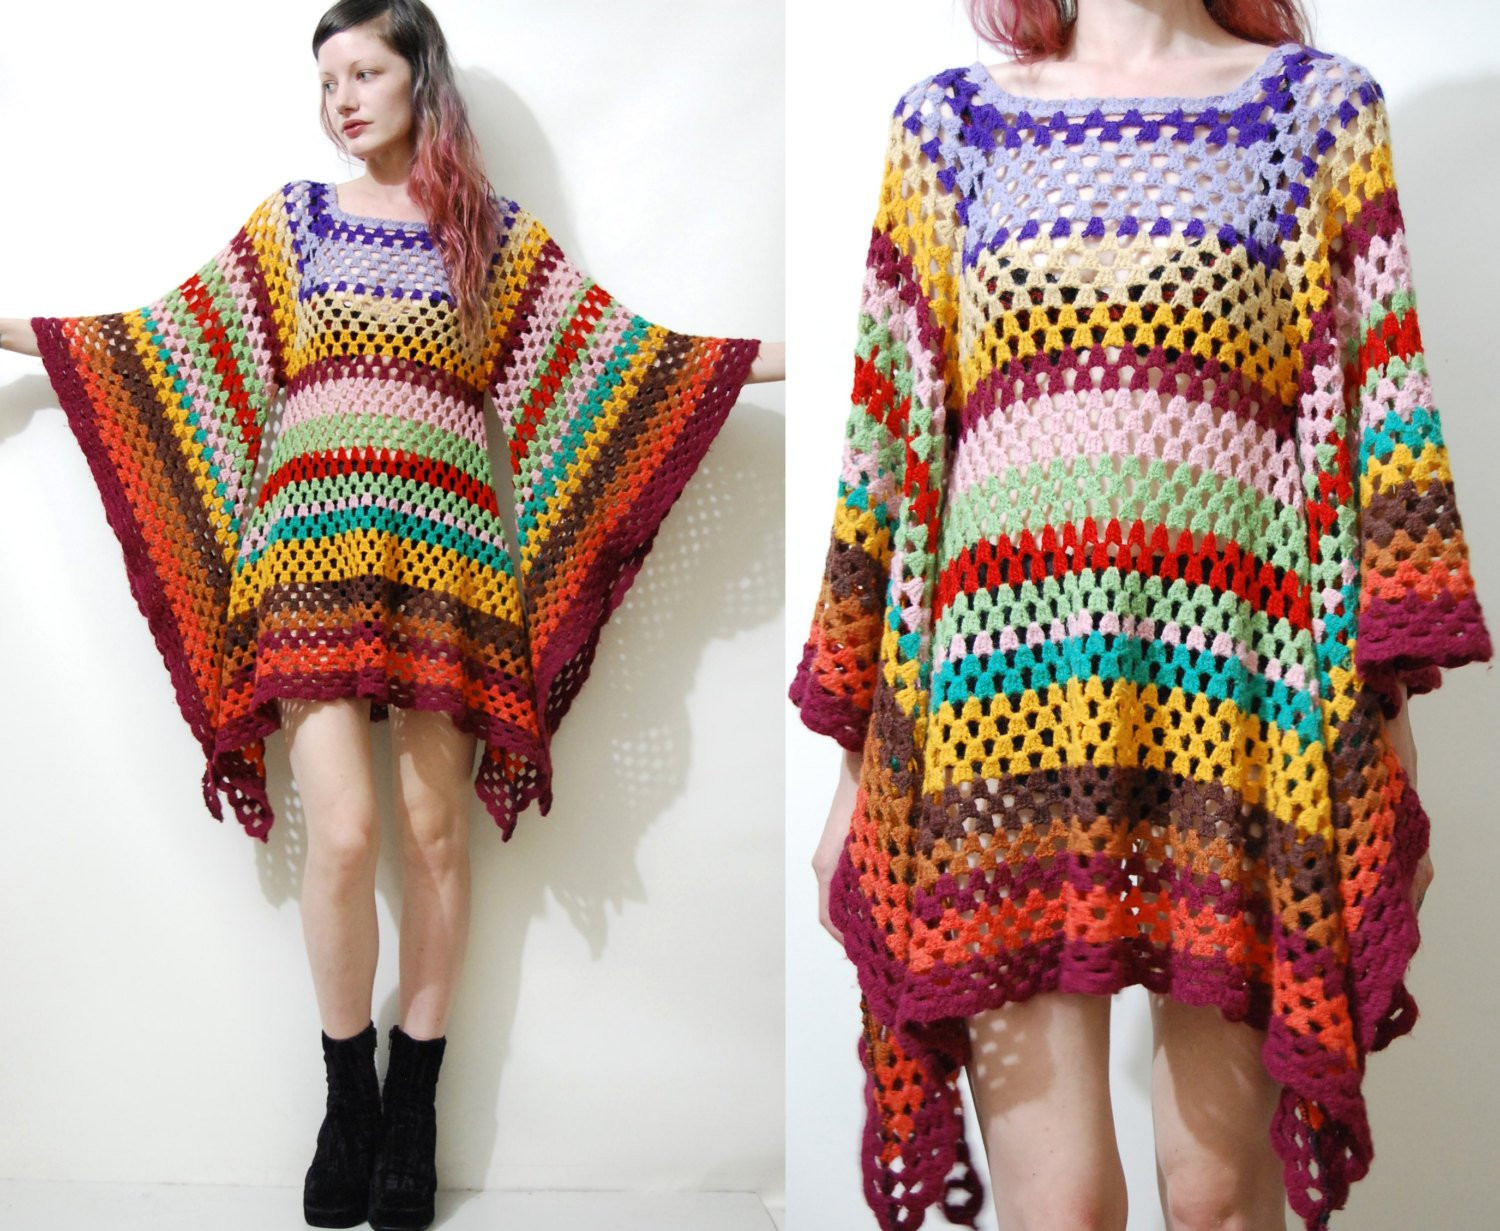 Awesome Crochet Dress Vintage Colourful Granny Square Bell Sleeve Mini Crochet Clothing Patterns Of Amazing 44 Pics Crochet Clothing Patterns